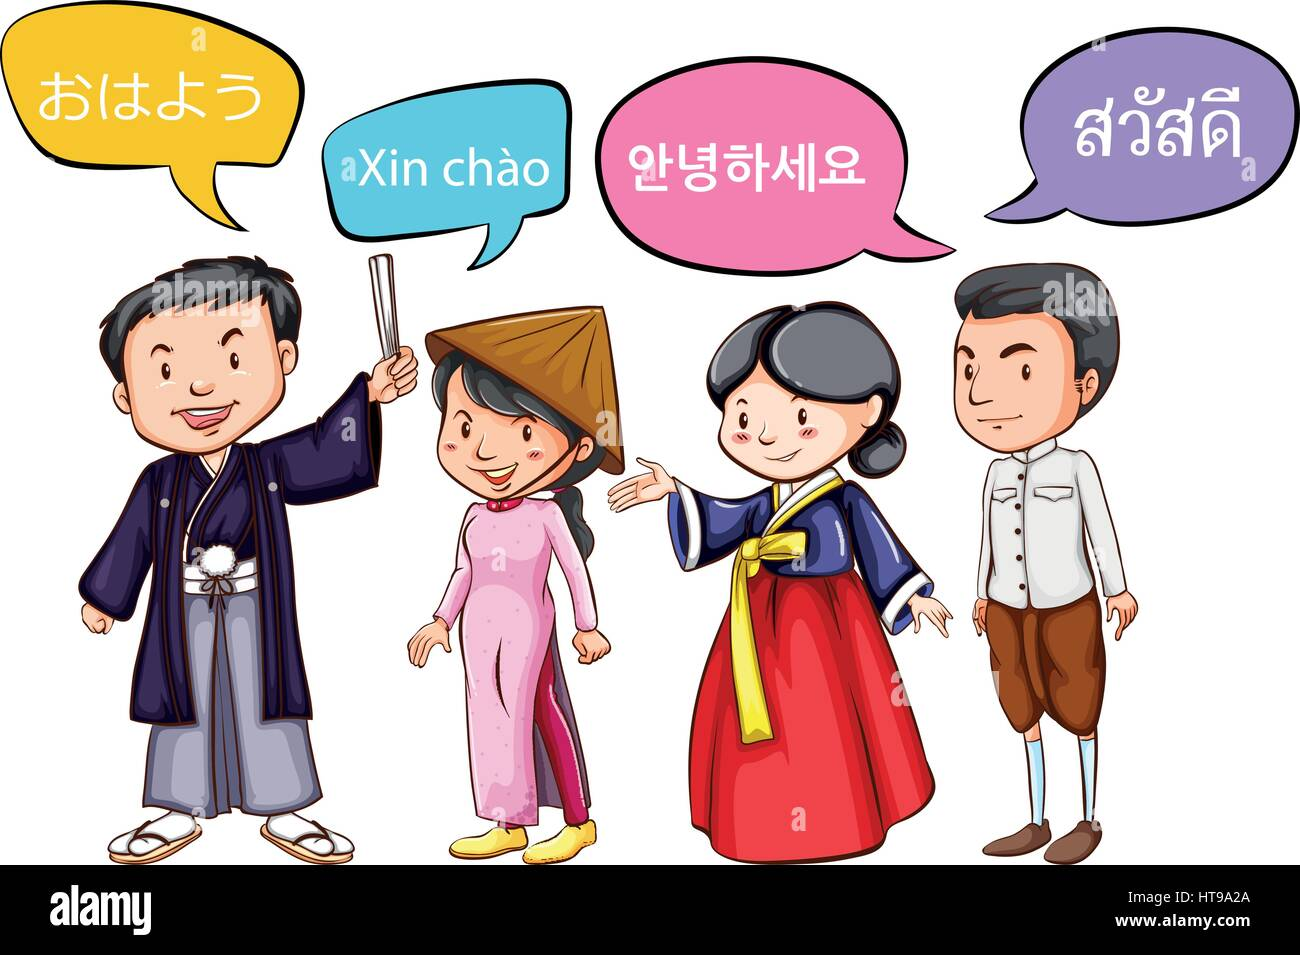 Four people greeting in different languages illustration stock four people greeting in different languages illustration kristyandbryce Image collections